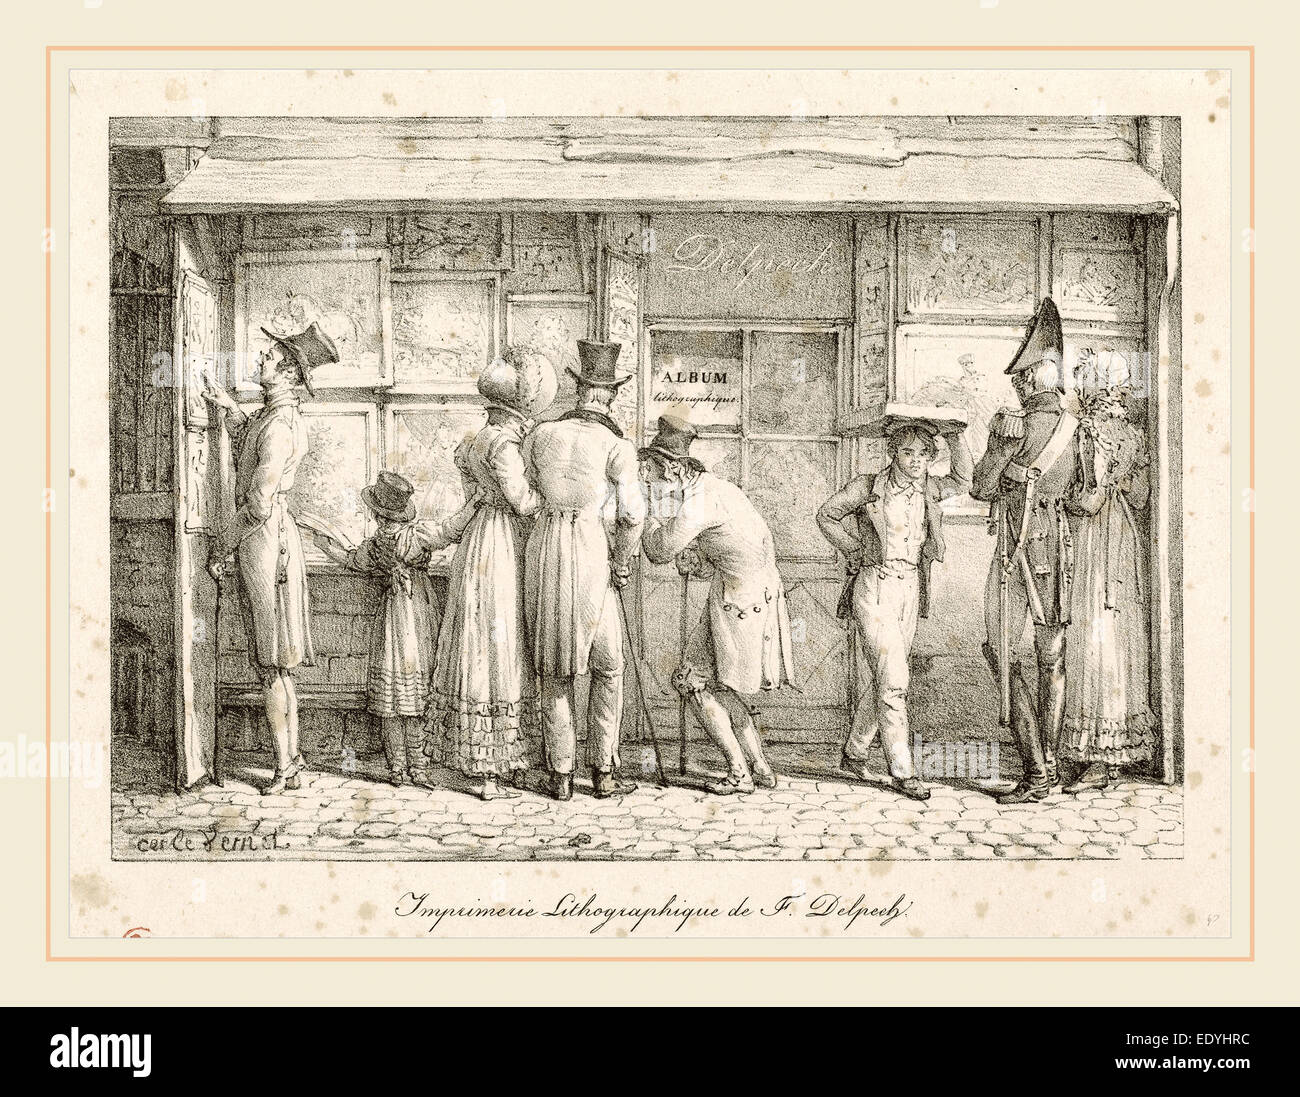 Carle Vernet, French (1758-1836), Lithographic Printing House of F. Delpech, lithograph - Stock Image